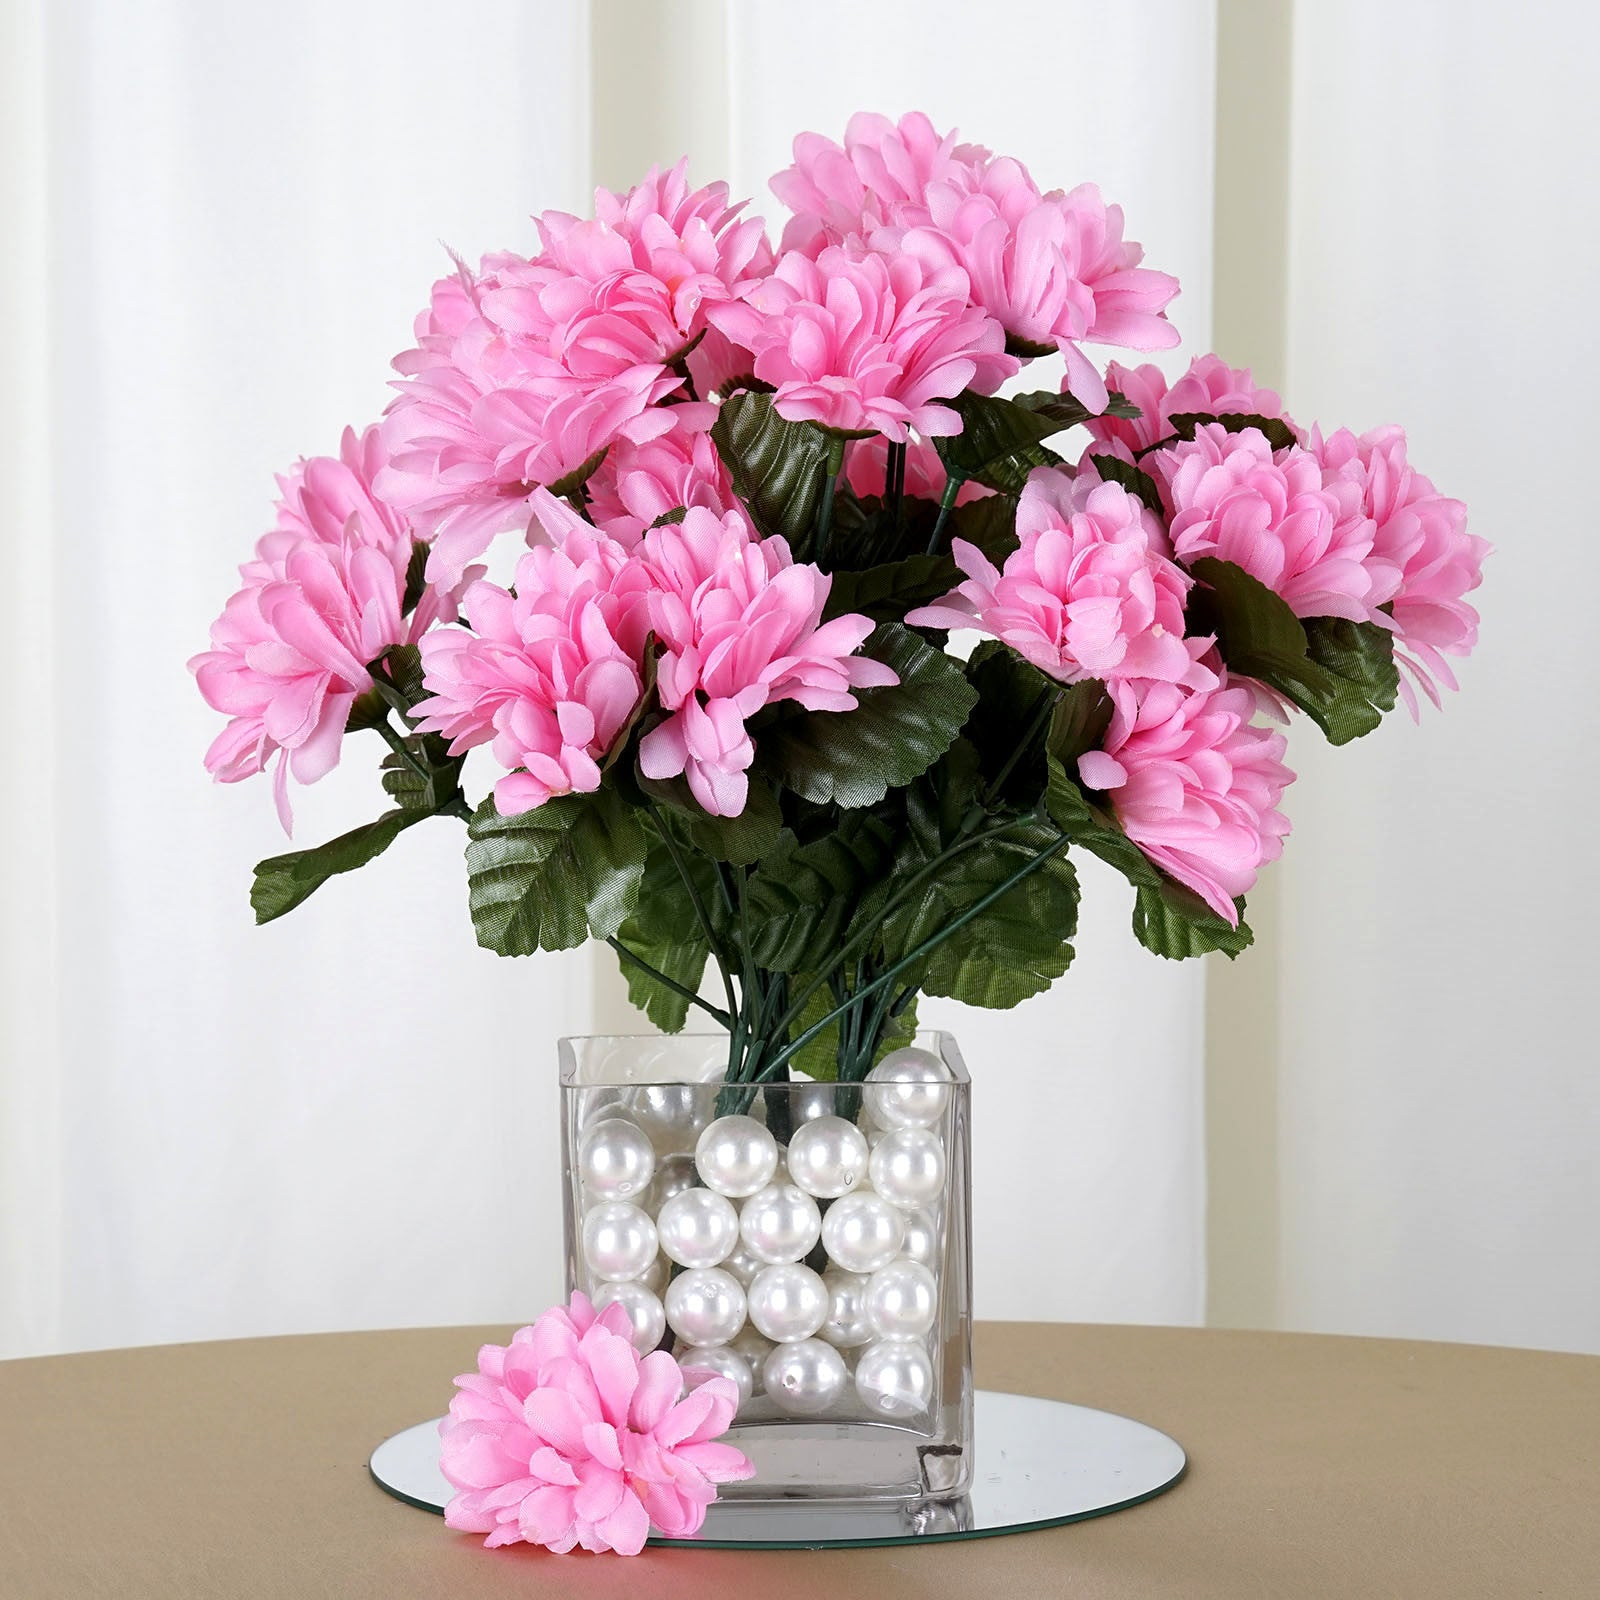 Pink 12 Bushes With 84 Artificial Silk Chrysanthemum Flower Bush For ...